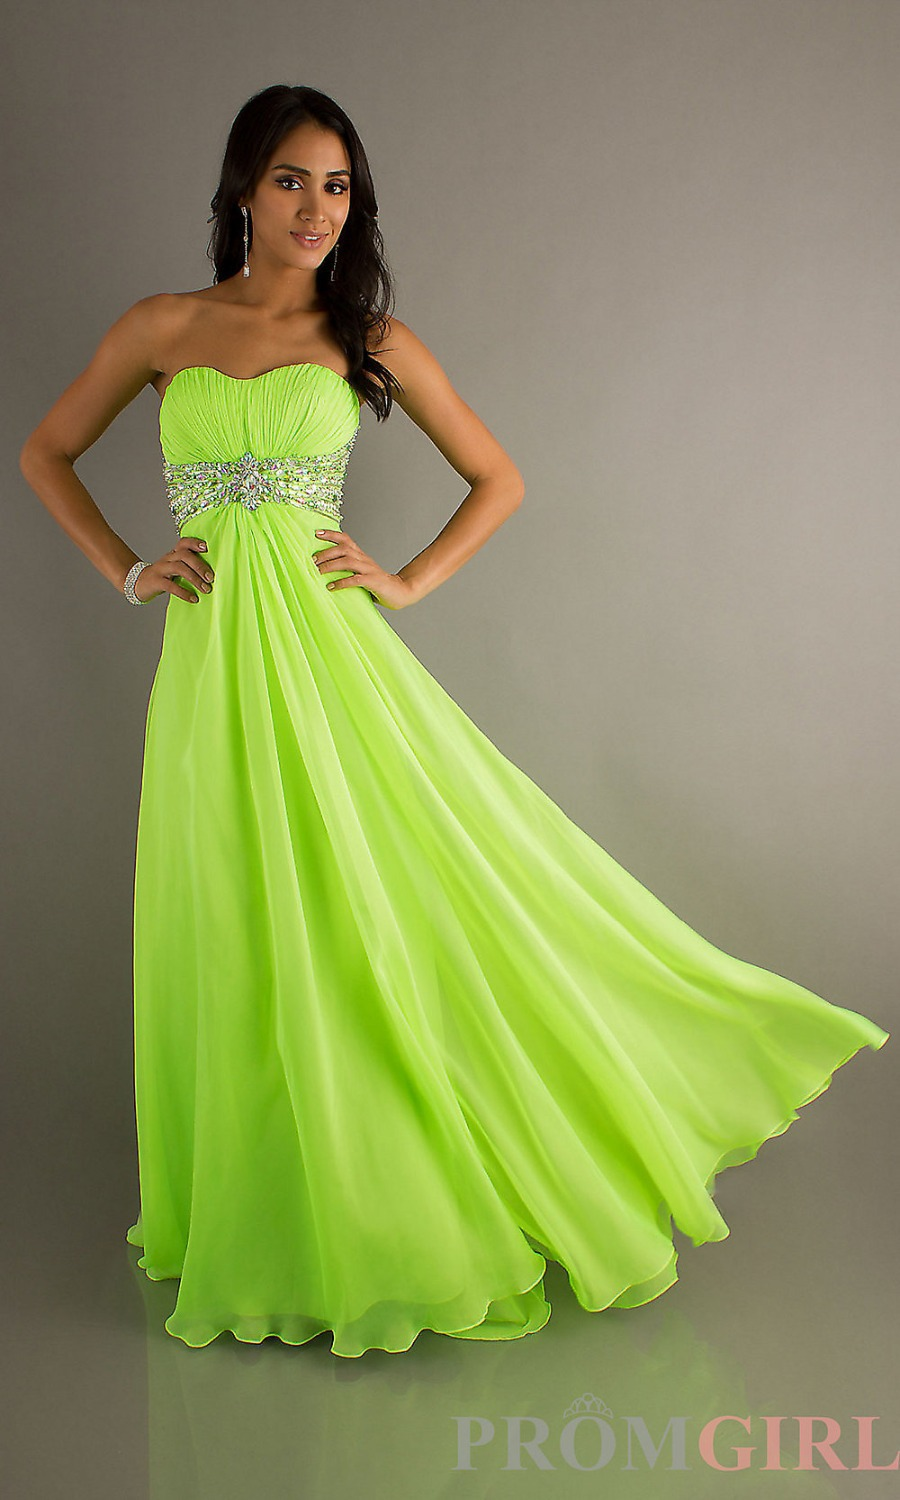 Fashion Lime Green Sweetheart Prom Dress Ruffles Crtstal Sequin Bling Cute Chiffon Evening